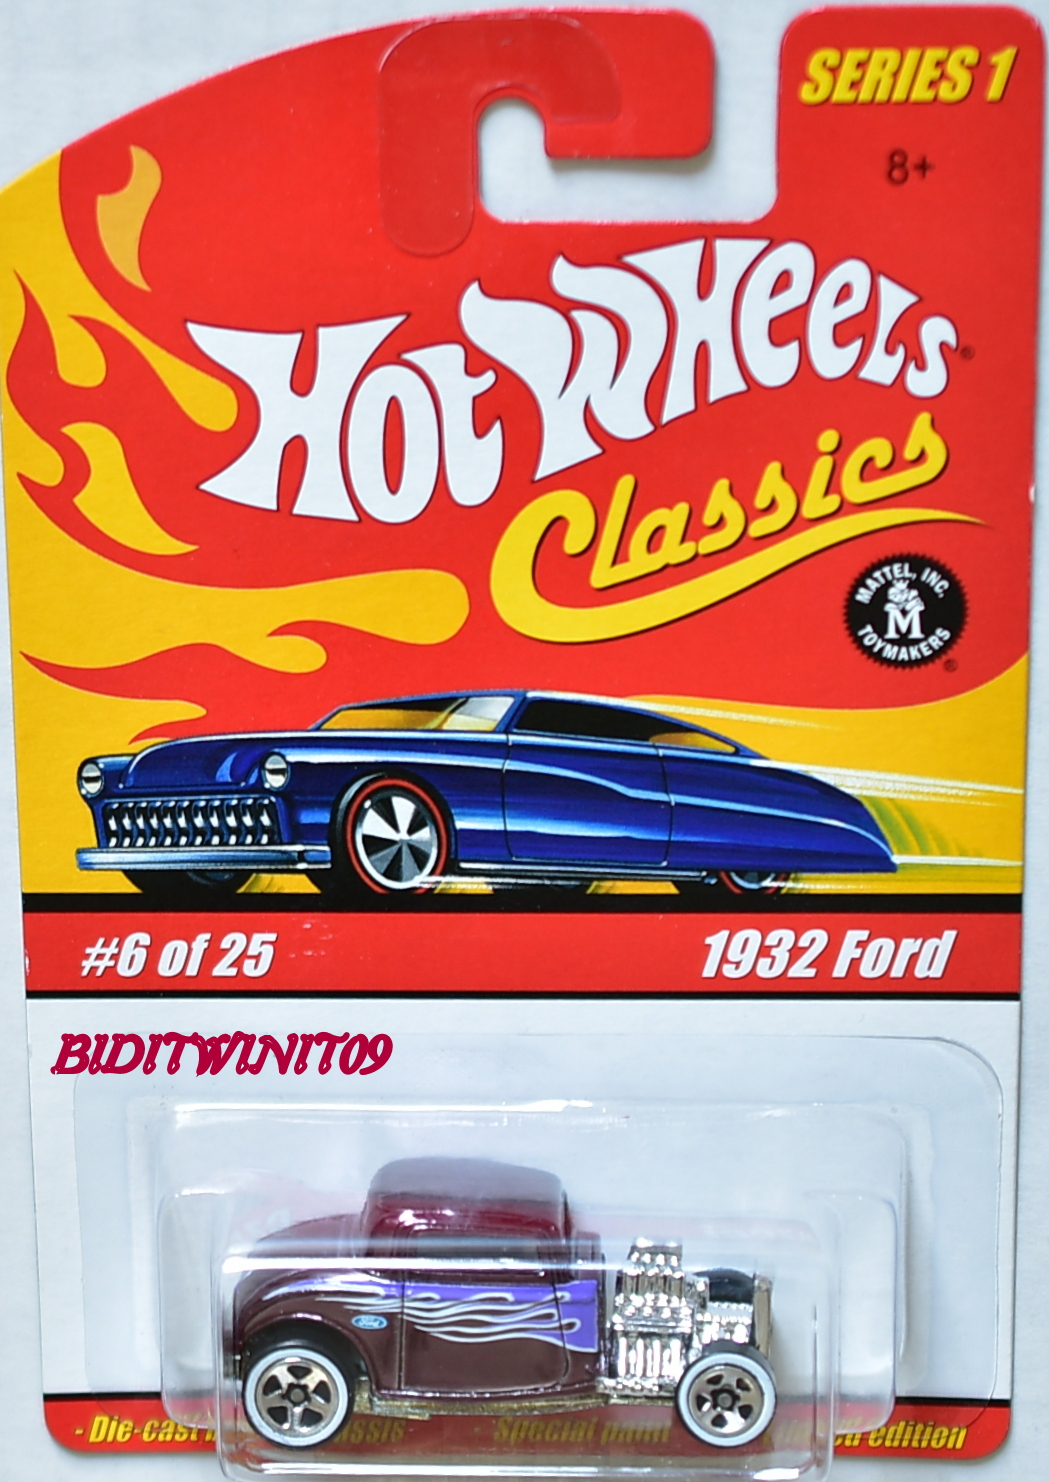 HOT WHEELS CLASSICS SERIES 1 #6/25 1932 FORD LIMITED EDITION E+